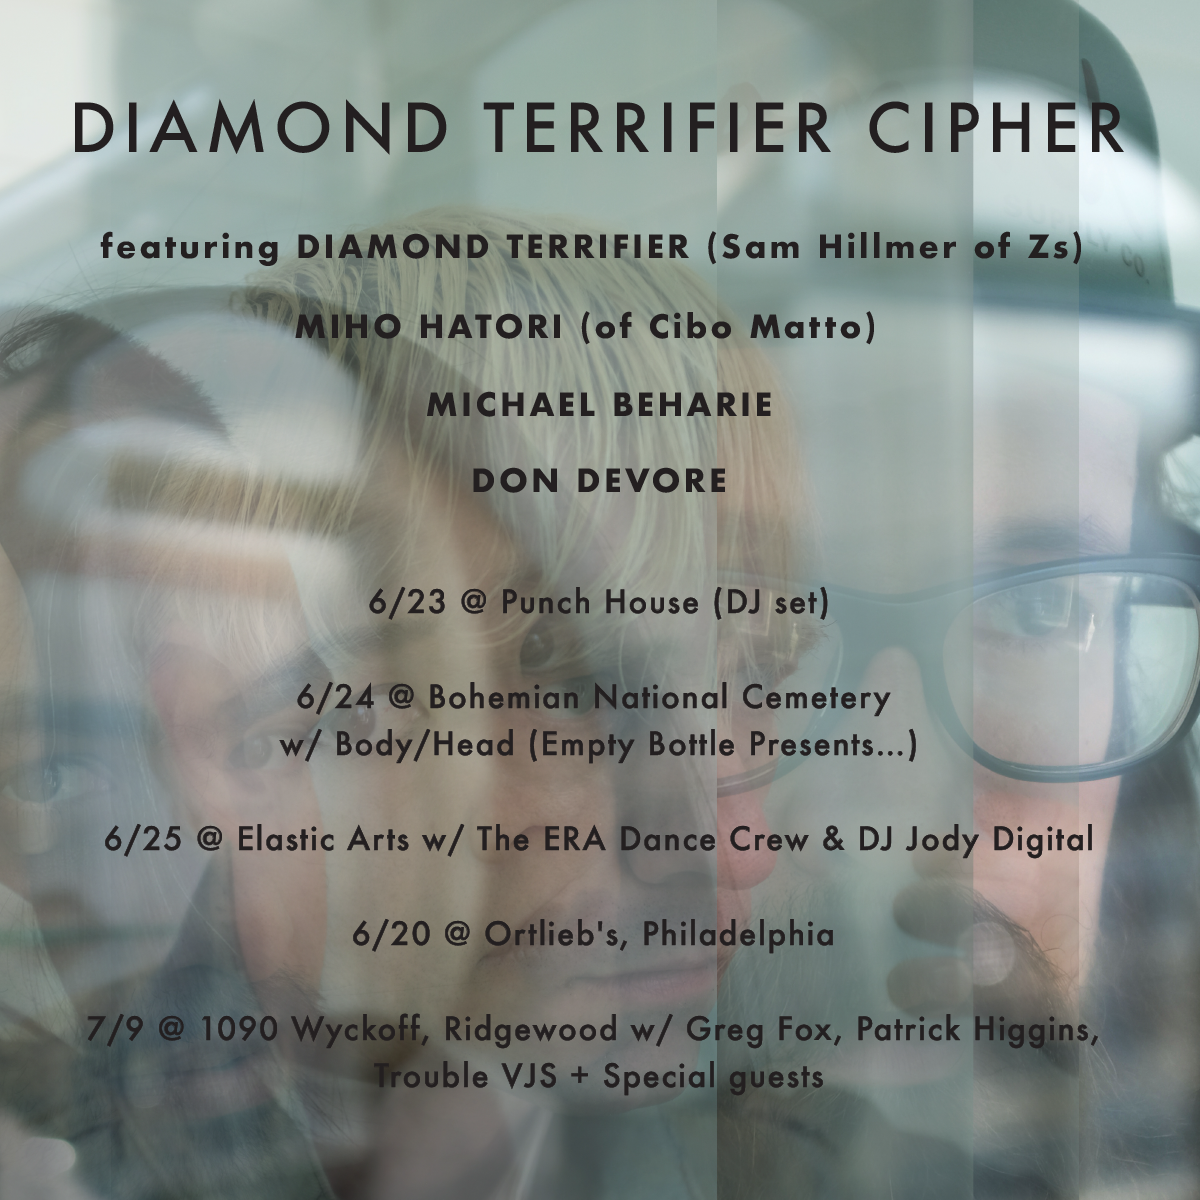 DT Cipher summer 2017 dates